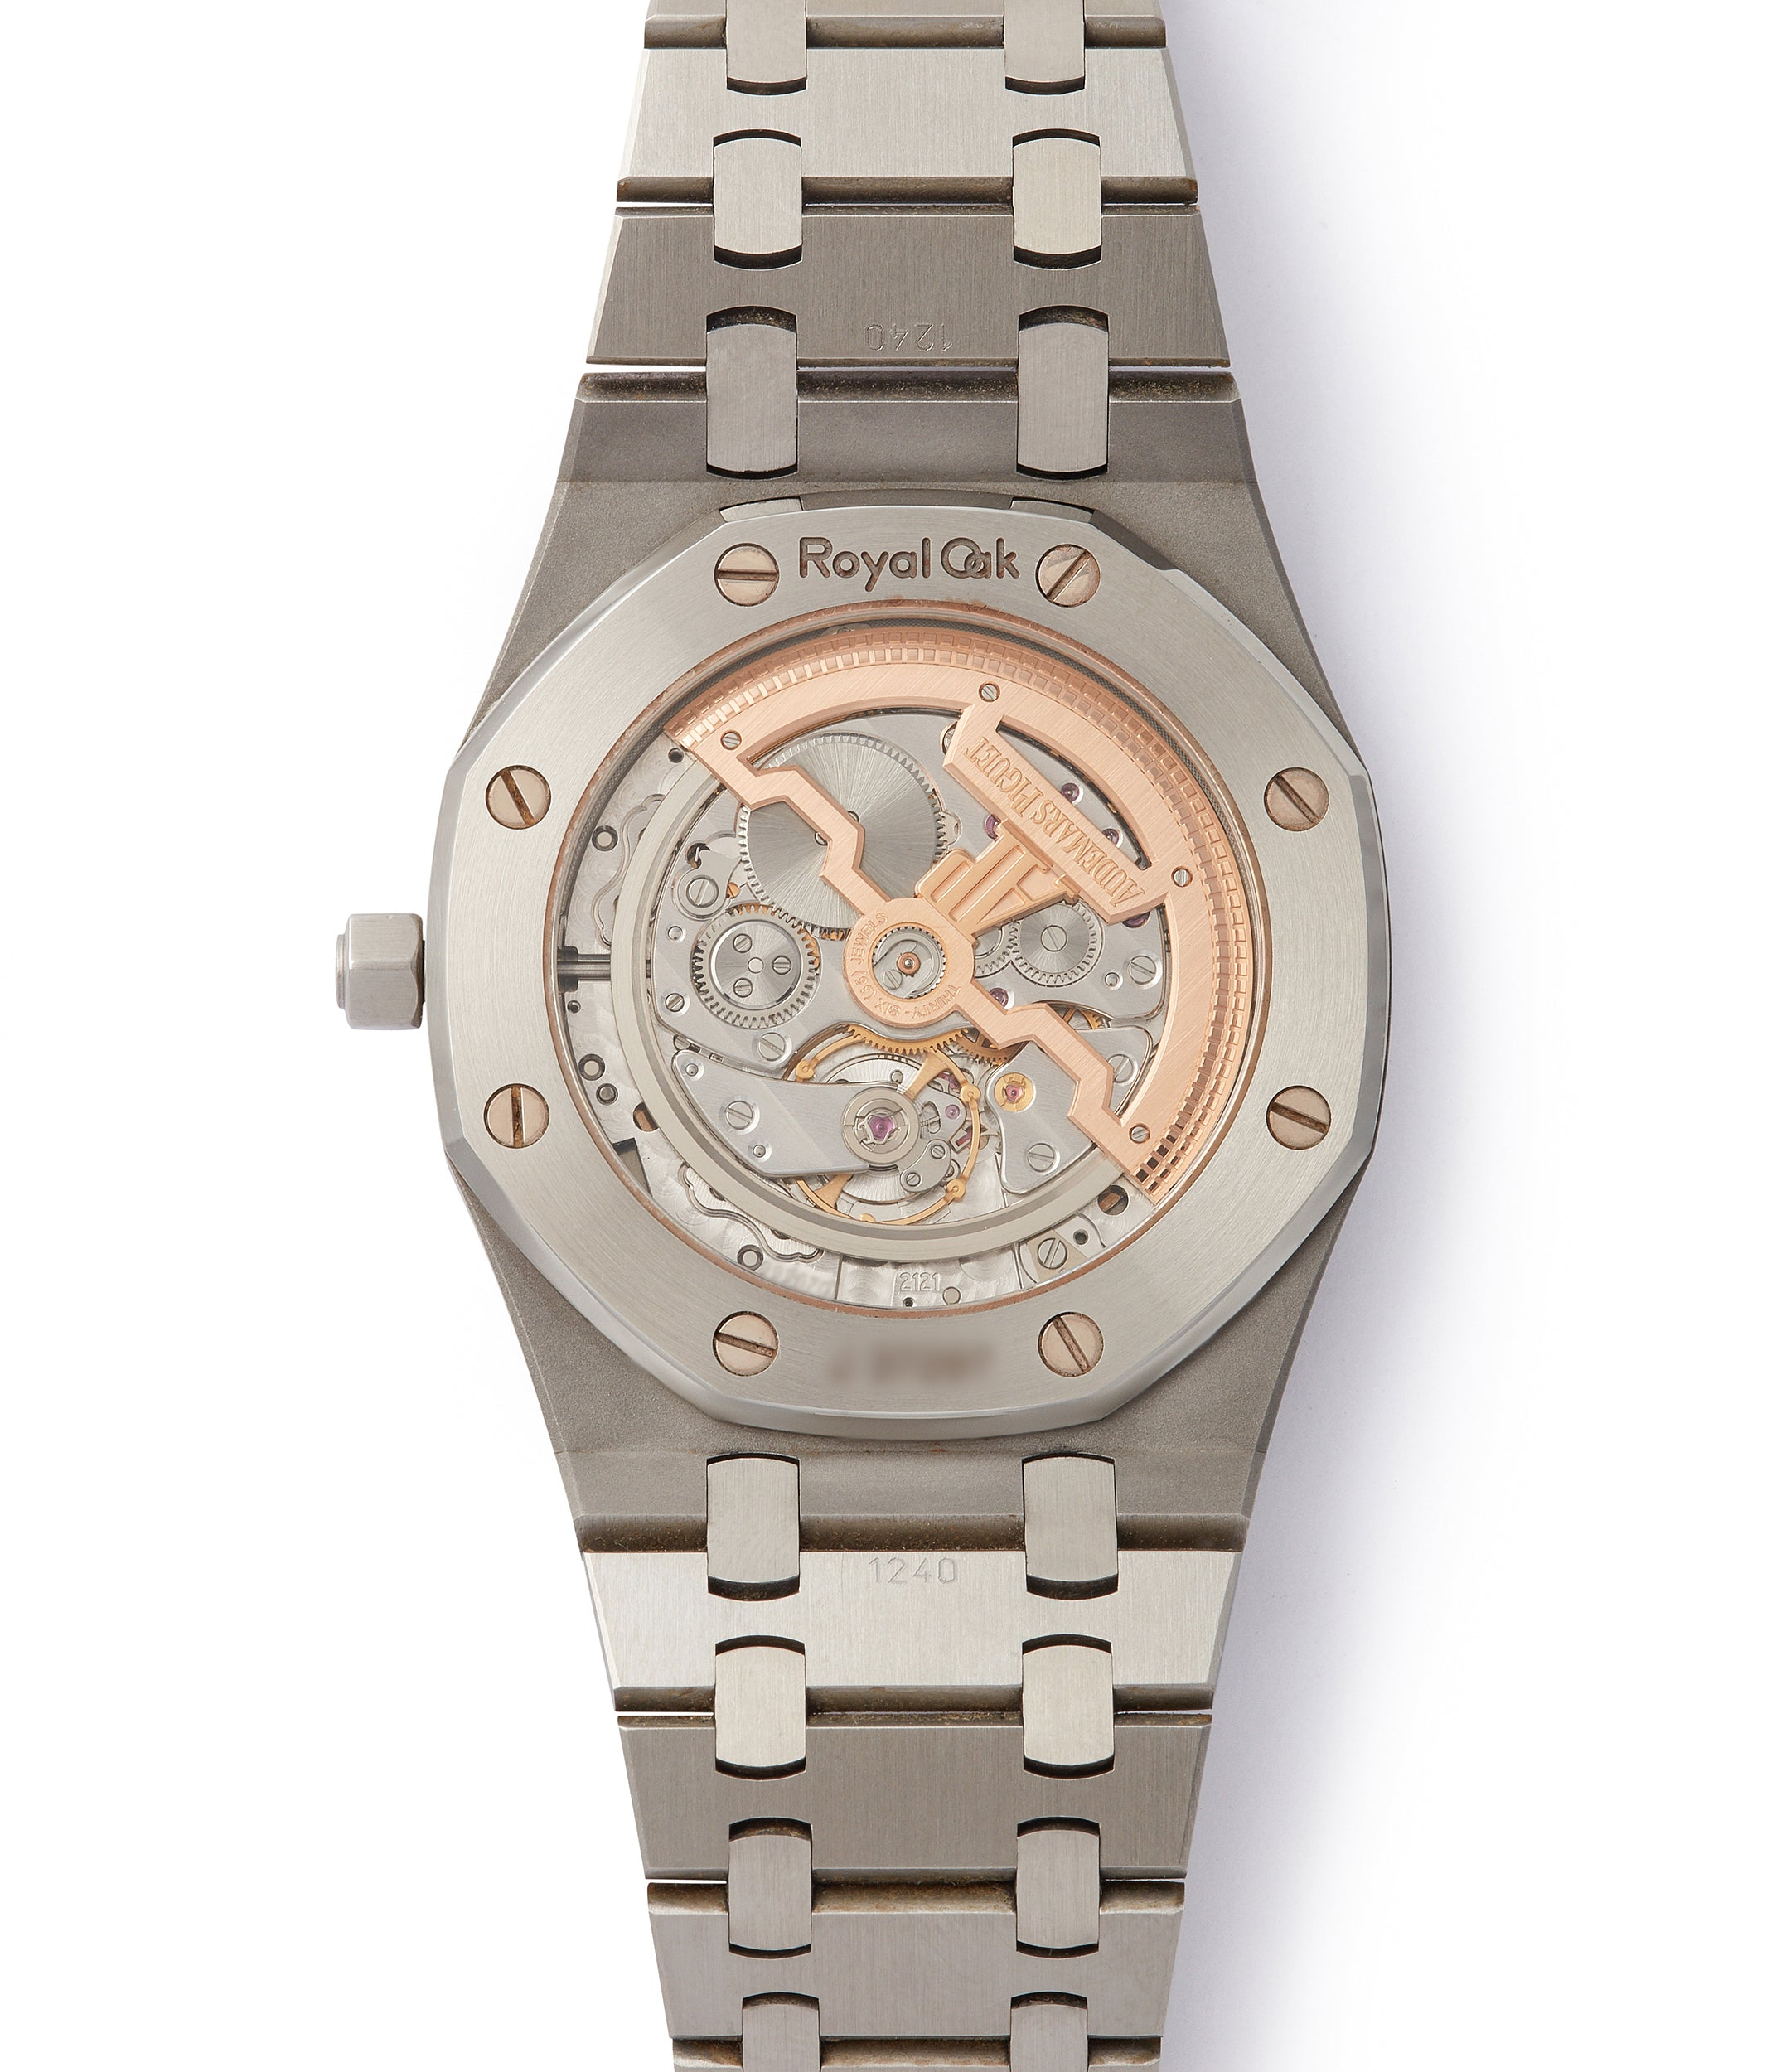 Royal Oak 15202 | Steel